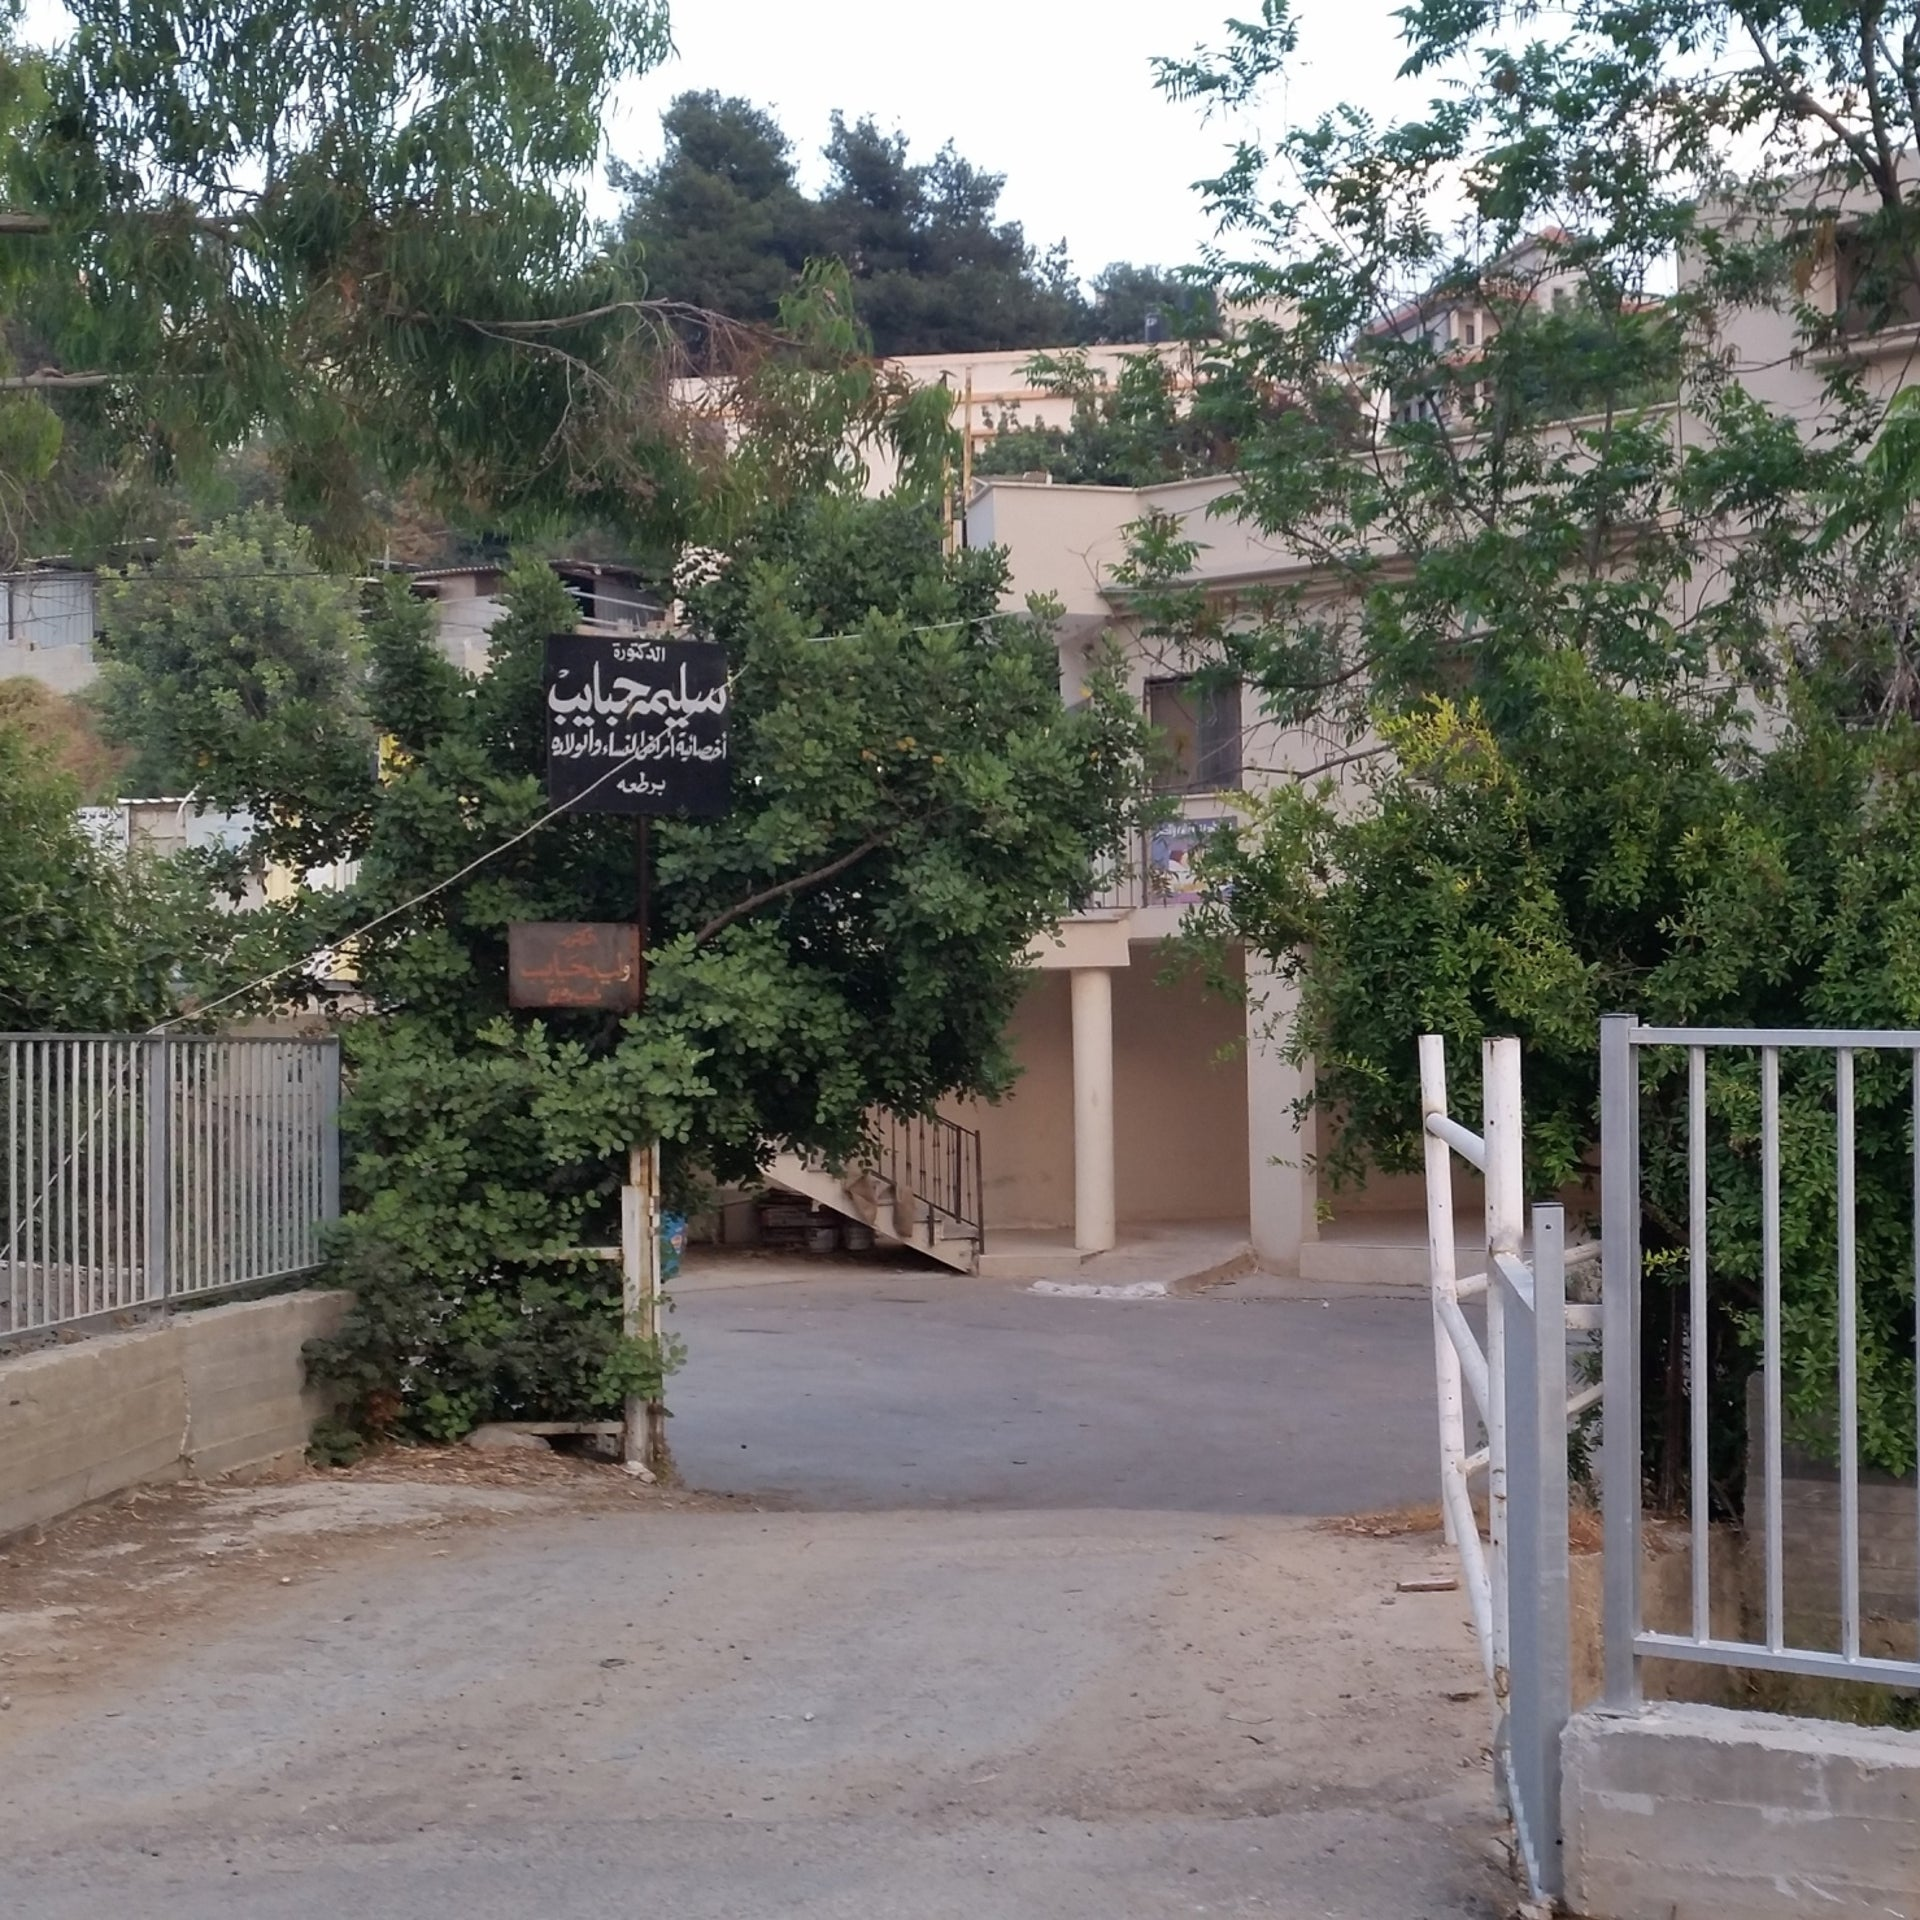 The entrance for Israeli patients to Dr. Walid Habaib's clinic in Barta'a, June 2017.